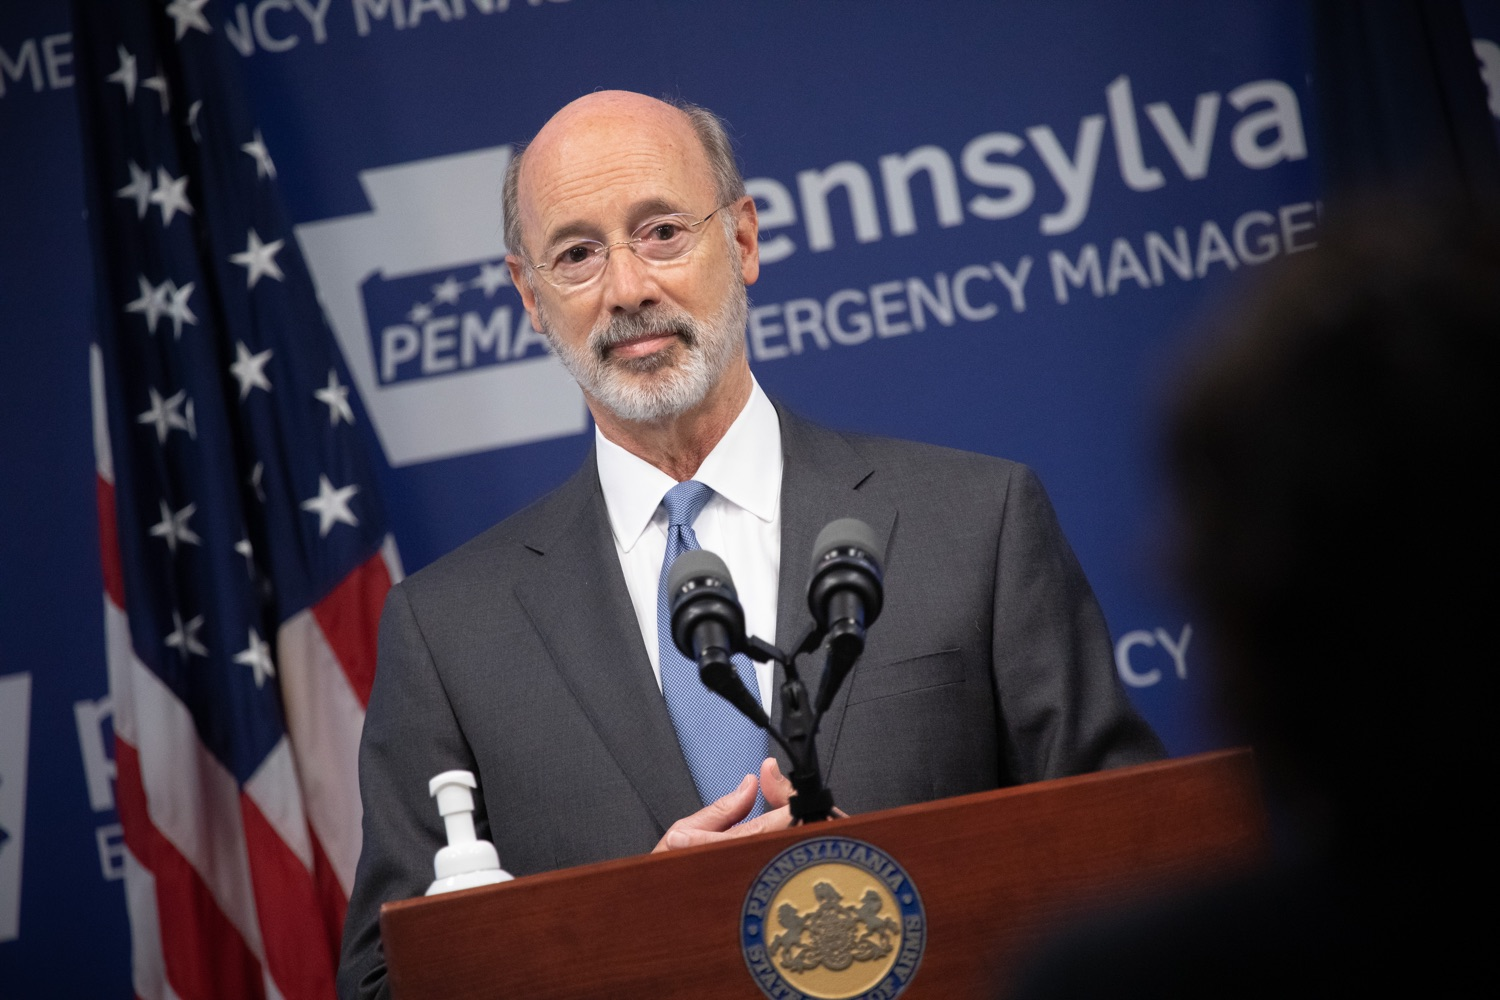 "<a href=""https://filesource.wostreaming.net/commonwealthofpa/photo/18088_gov_covid_update_dz_0009.jpg"" target=""_blank"">⇣ Download Photo<br></a>Governor Tom Wolf answers questions from the press. Governor Tom Wolf announced that people with intellectual disabilities and autism and the providers of support services for these vulnerable Pennsylvanians will receive $260 million in CARES Act funding to help continue to provide services during the COVID-19 pandemic.  Gov. Wolf was joined by Department of Human Services Secretary Teresa Miller, who outlined to details of funding allocations.  JUNE 15, 2020 - HARRISBURG, PA"